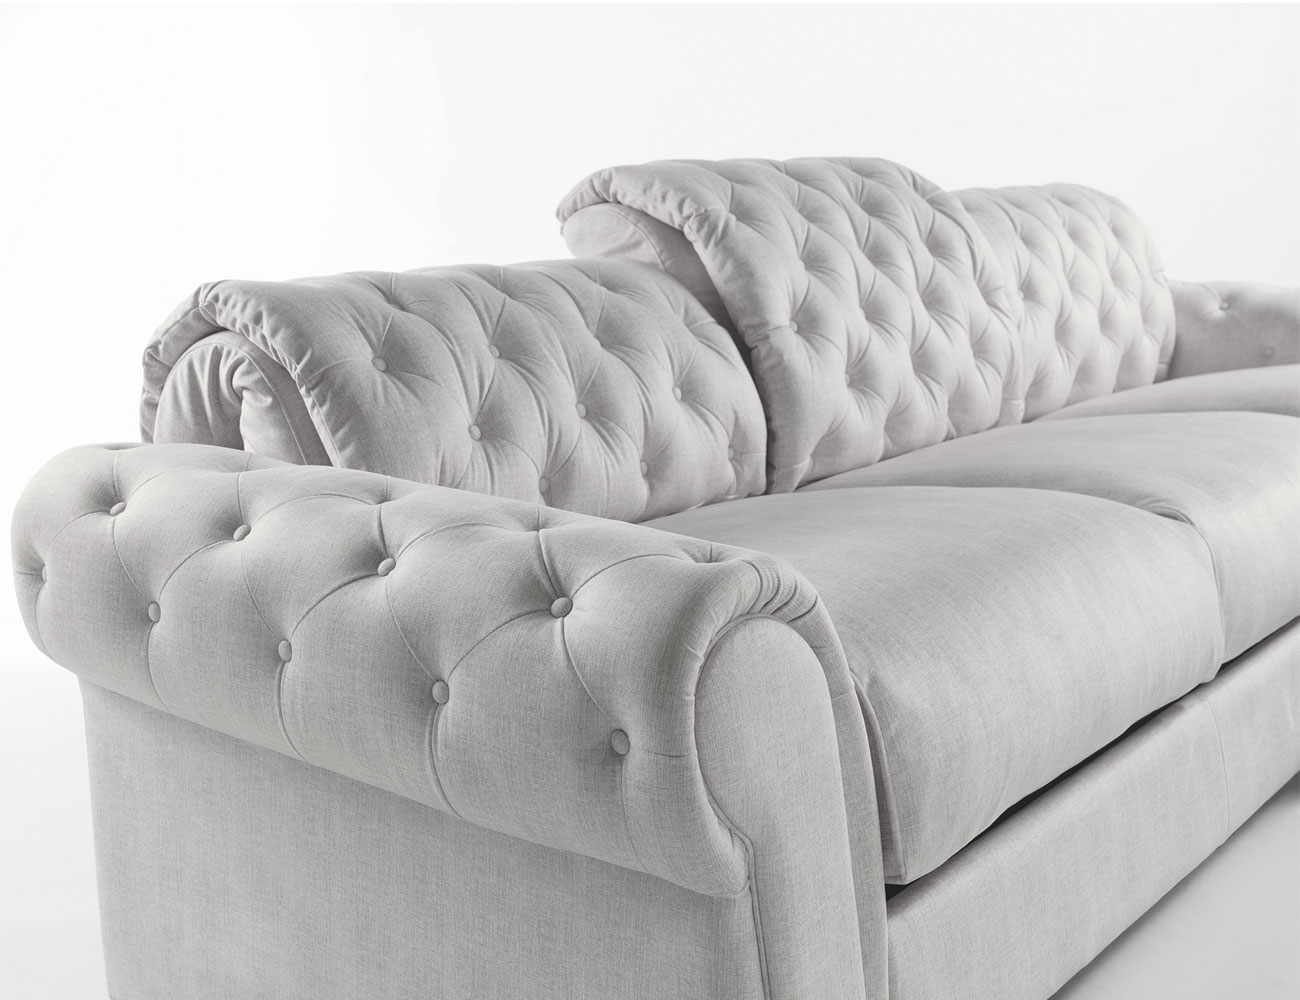 Sofa chaiselongue gran lujo decorativo capitone blanco tela 158